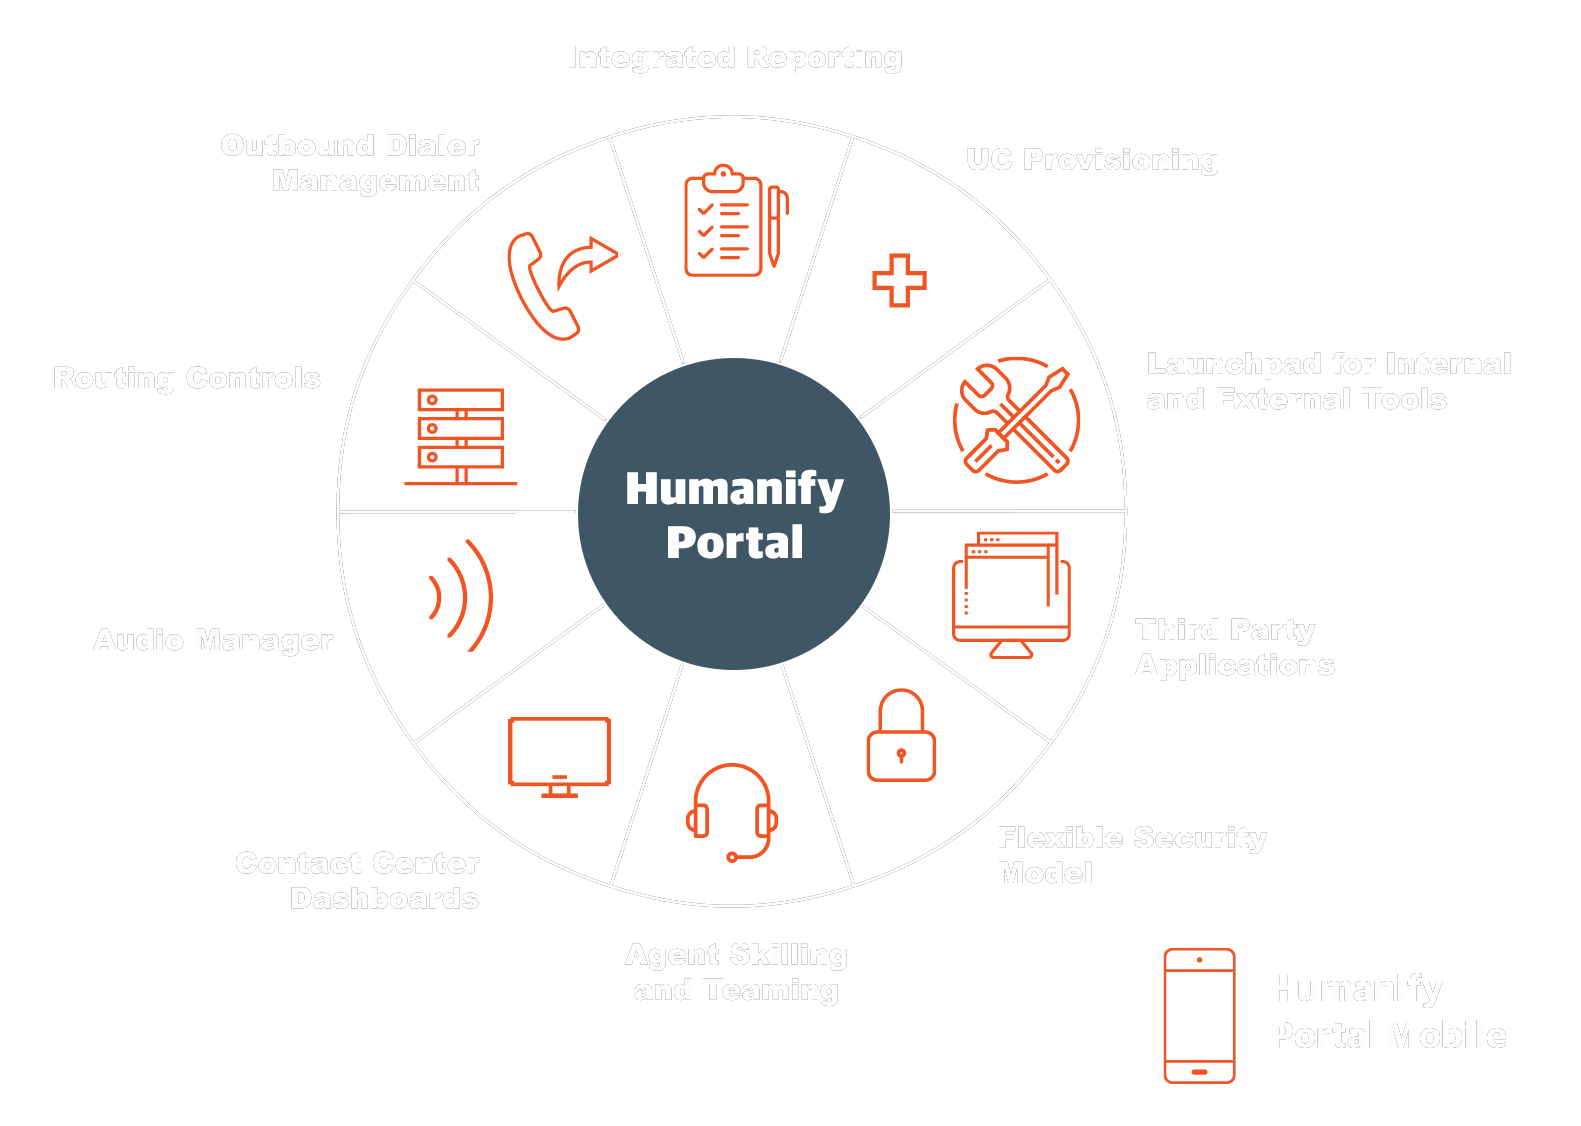 customer experience and suppor services features of Humanify Portal